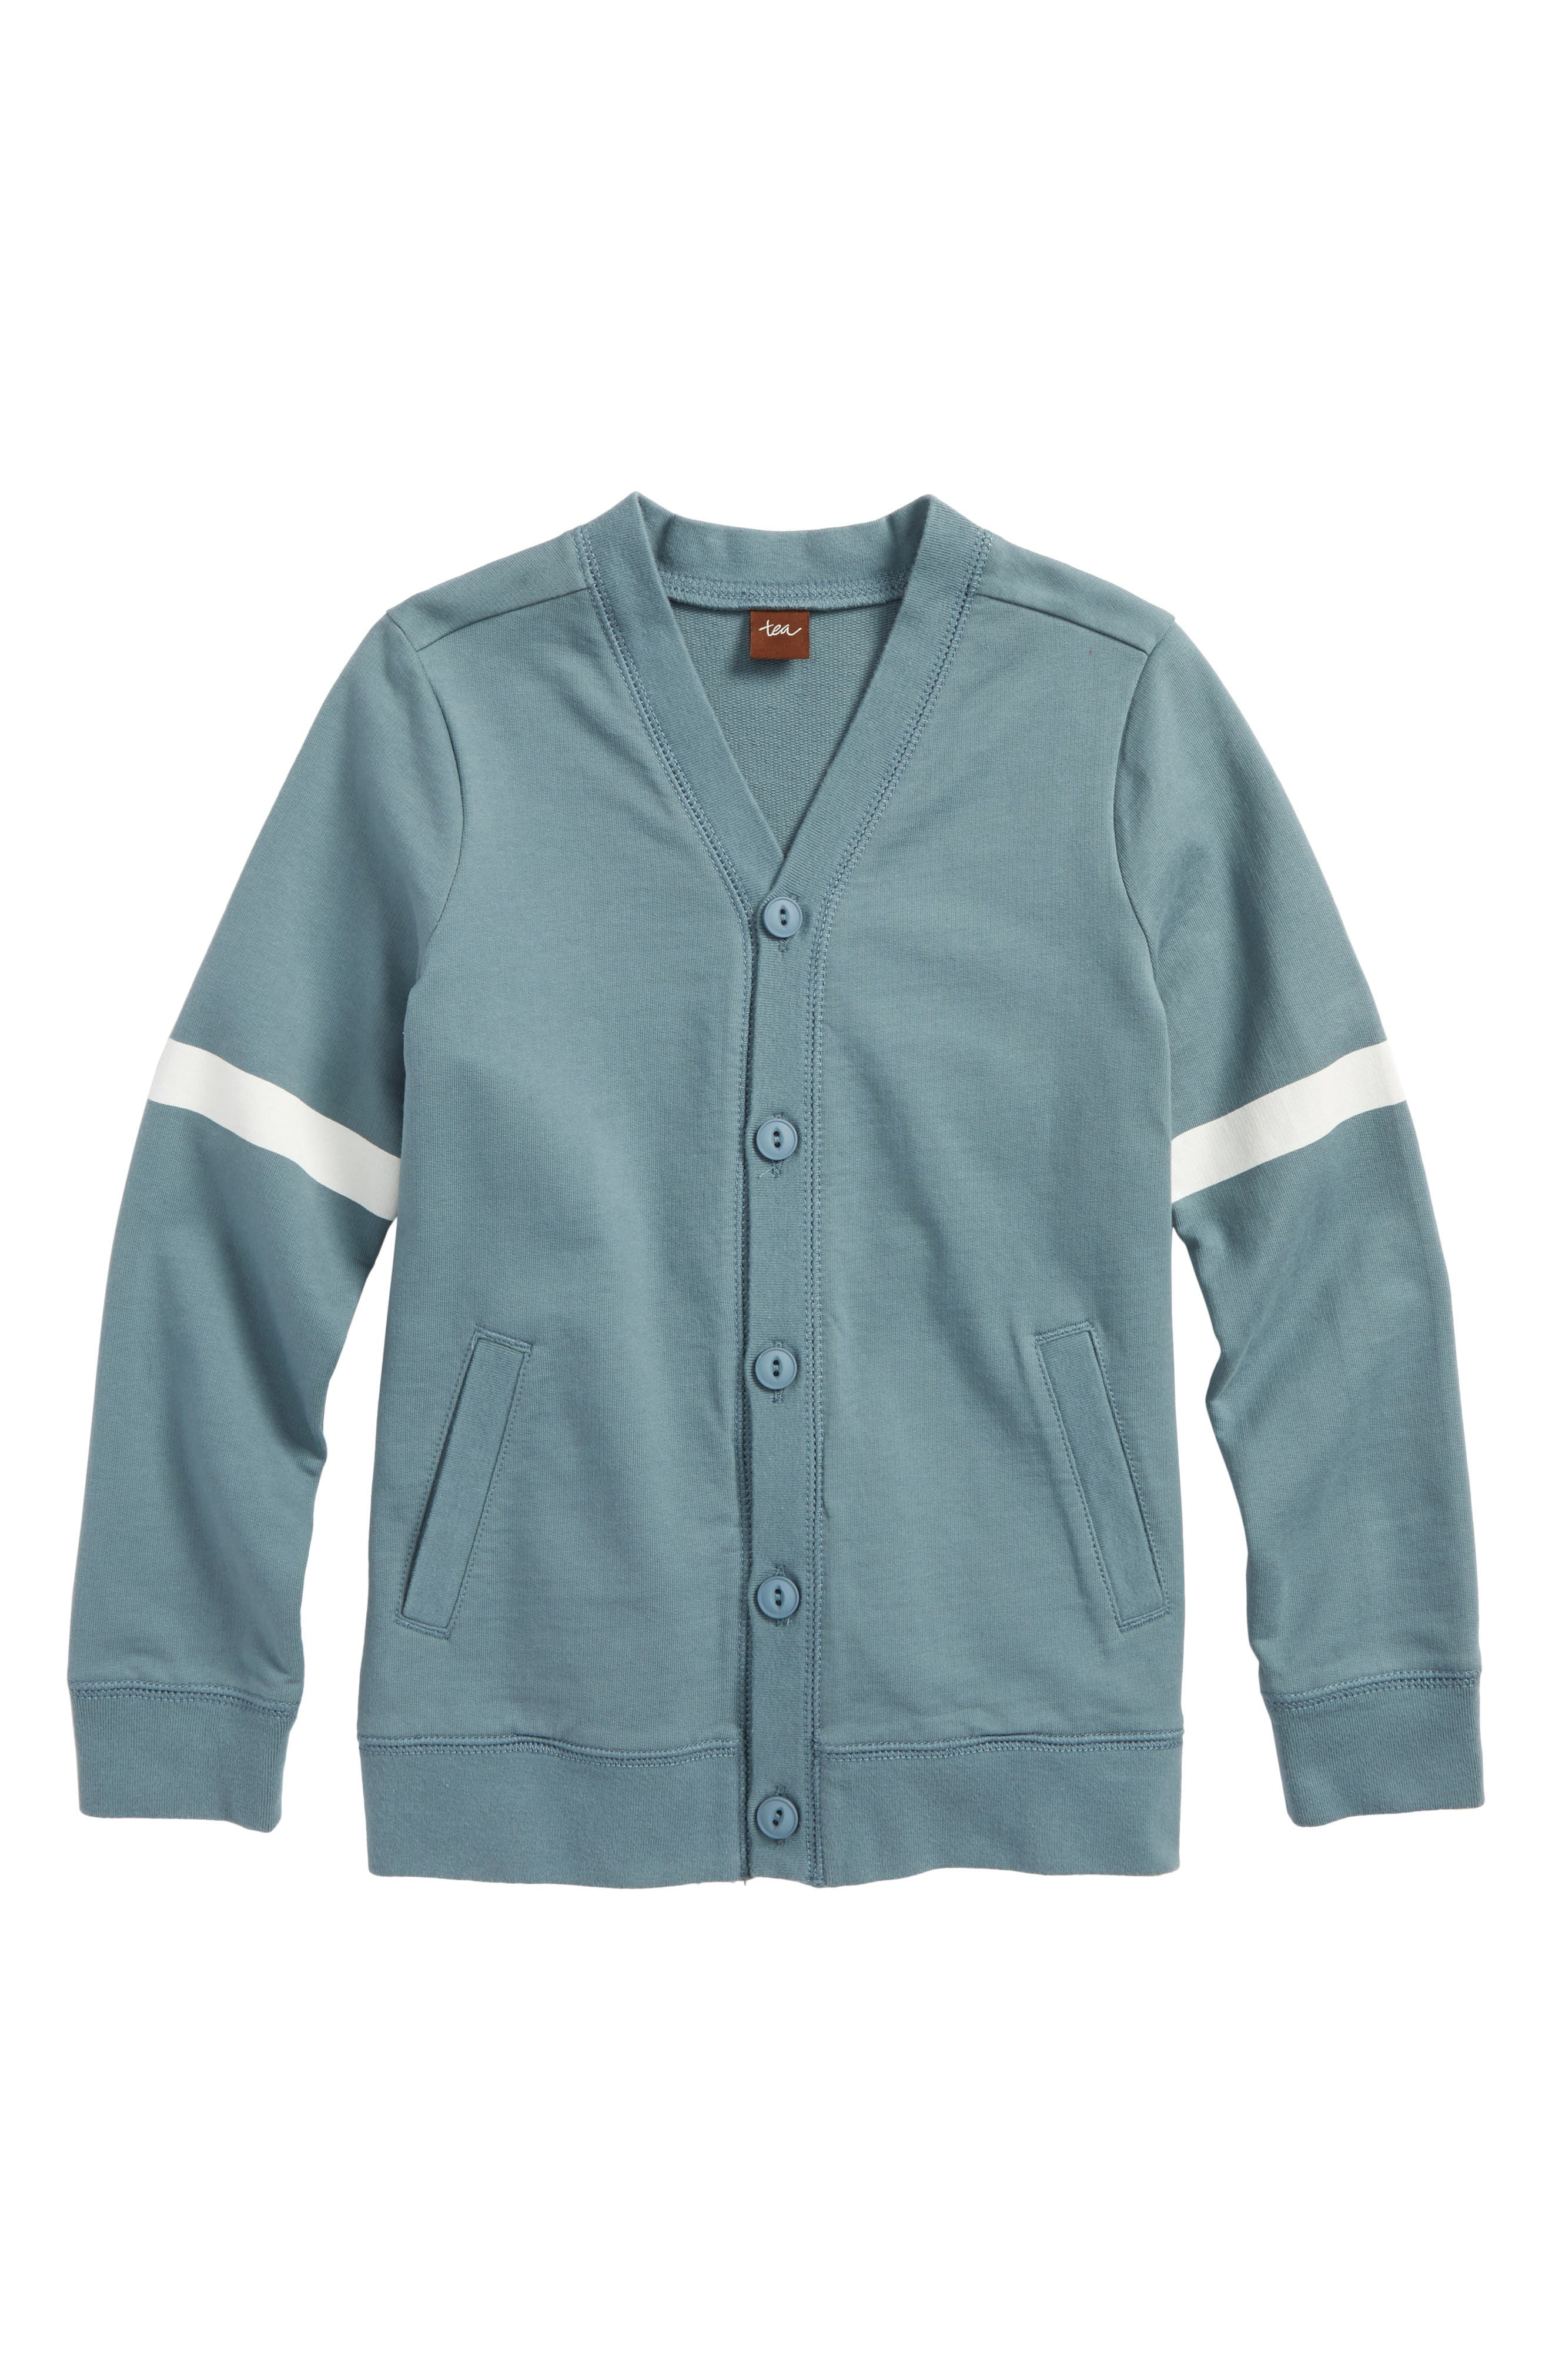 Alternate Image 1 Selected - Tea Collection Button Front Varsity Cardigan (Toddler Boys & Little Boys)